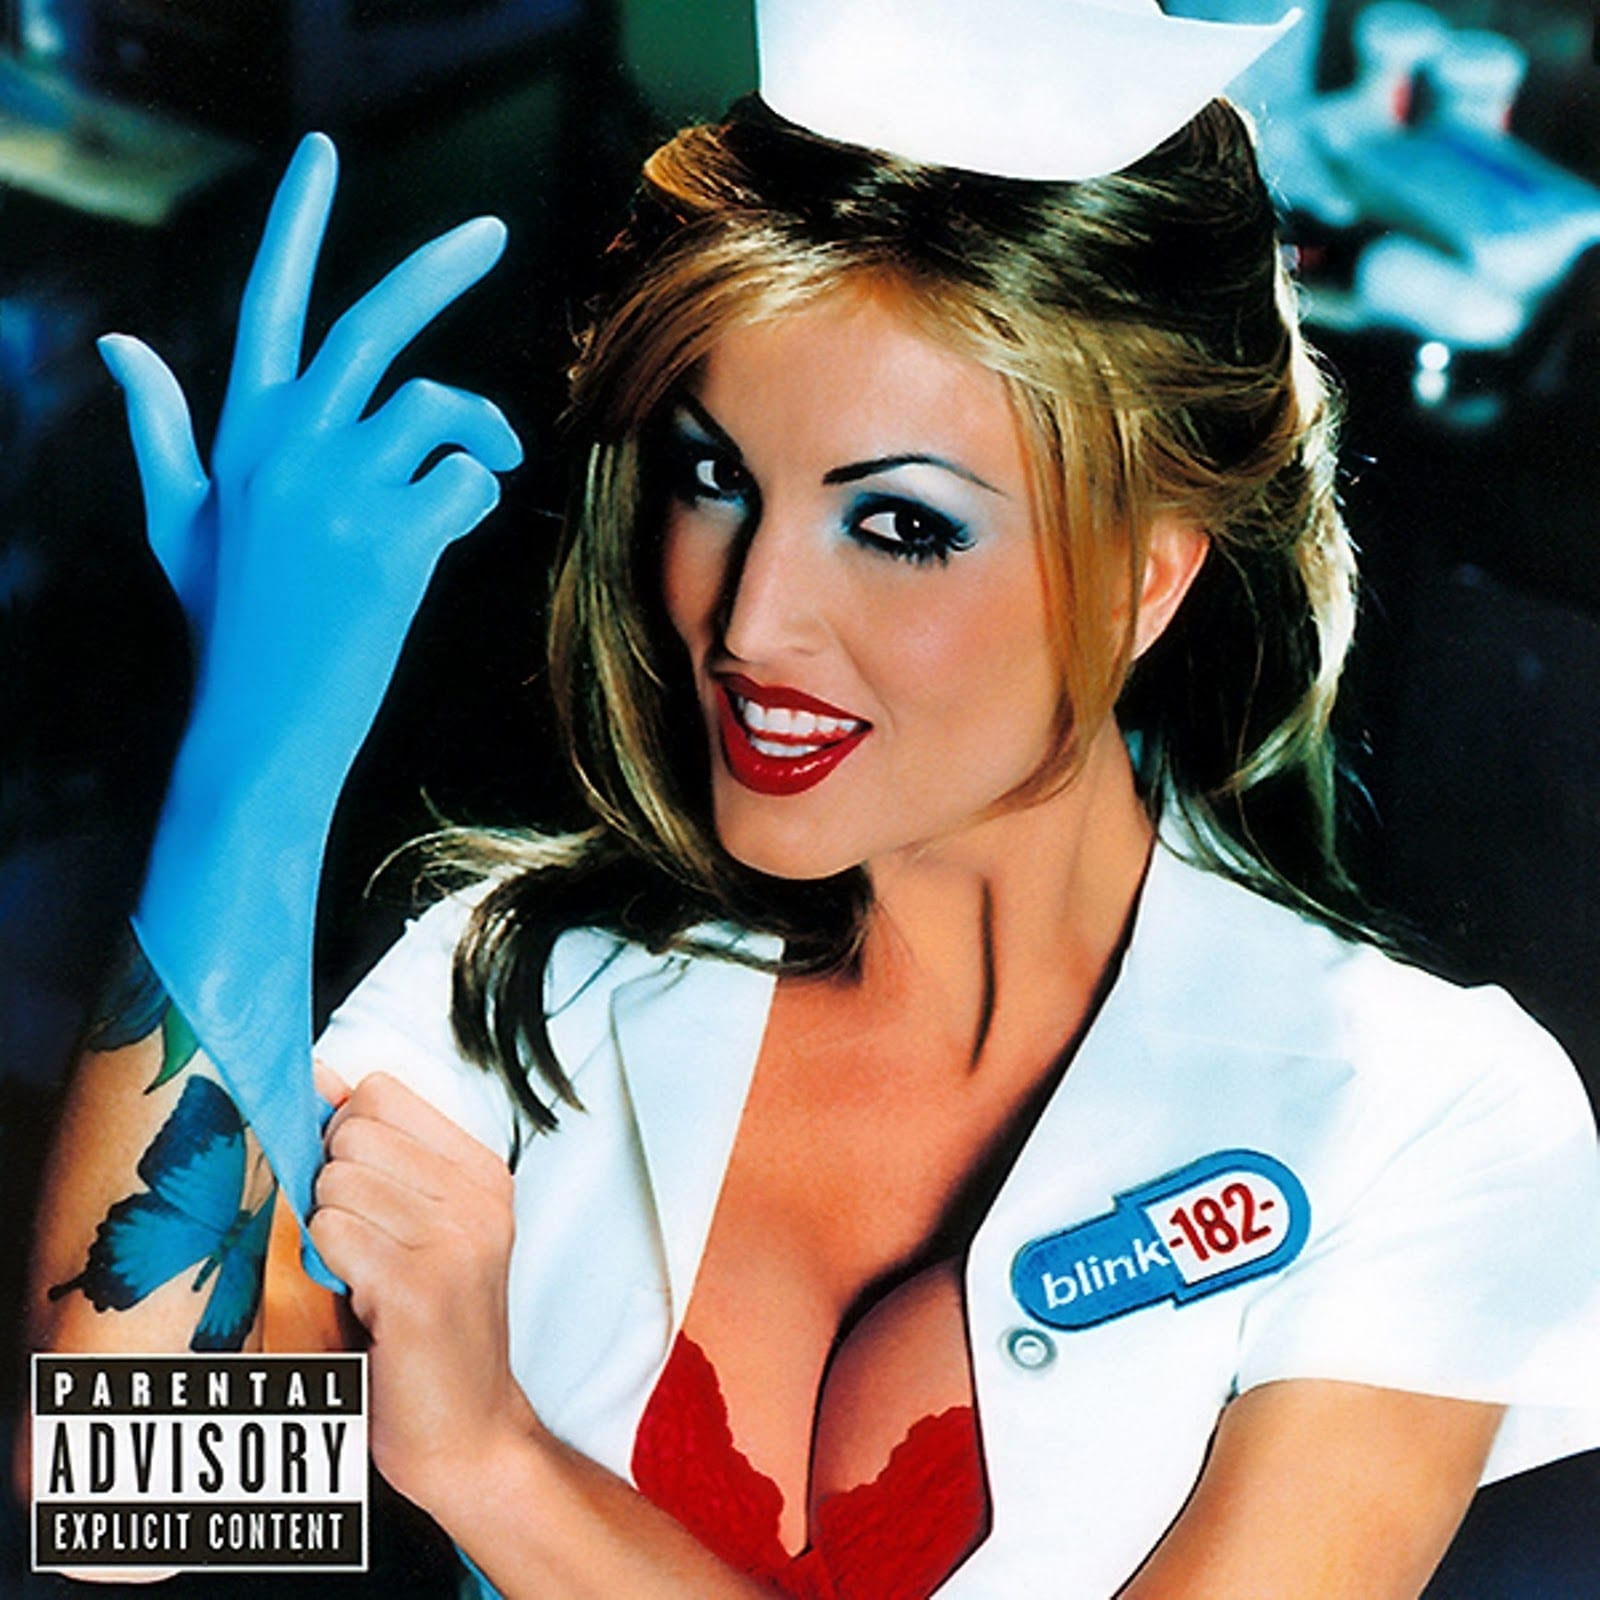 A Blast From The Past: Enema Of The State // Blink-182